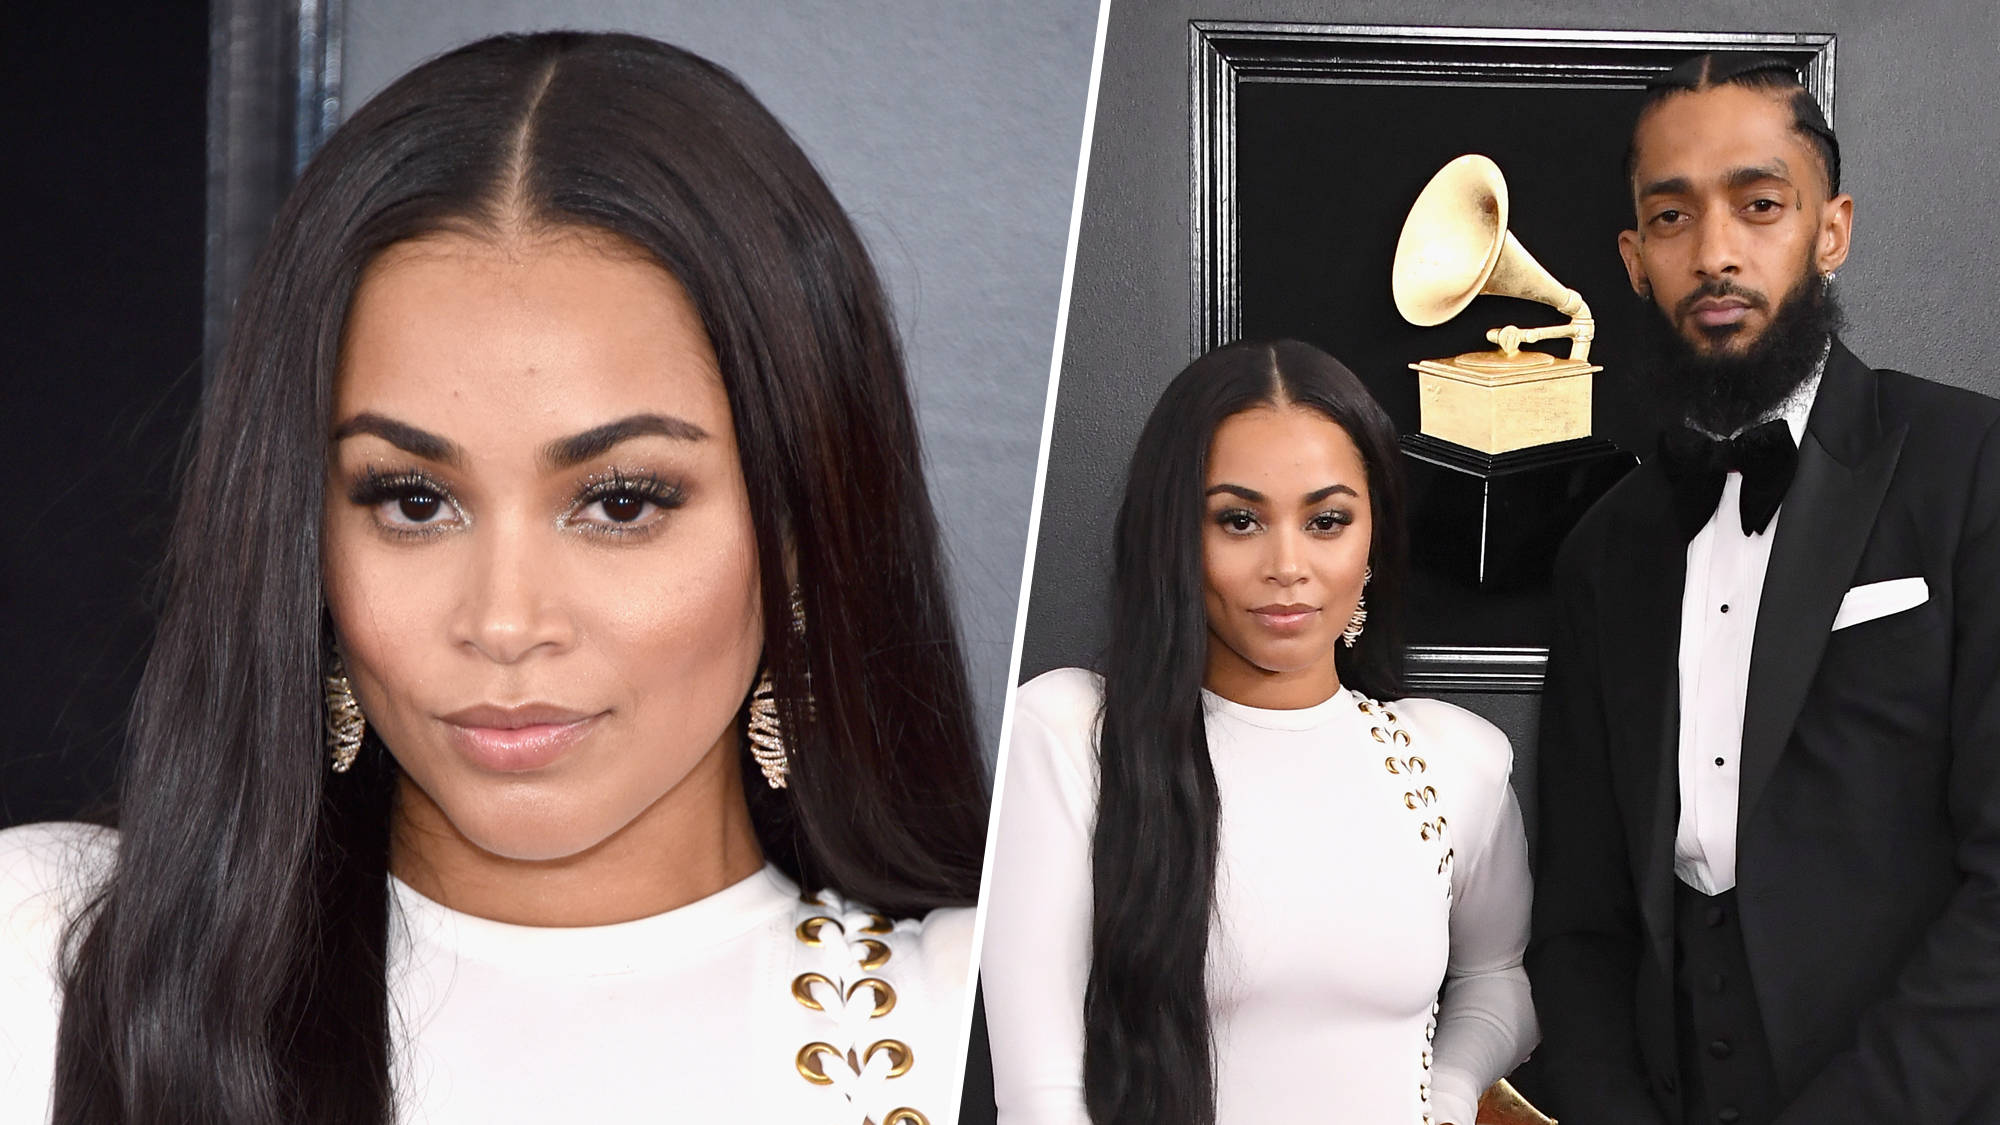 Lauren London Shares New Post In The Memory Of Nipsey Hussle - See It Here